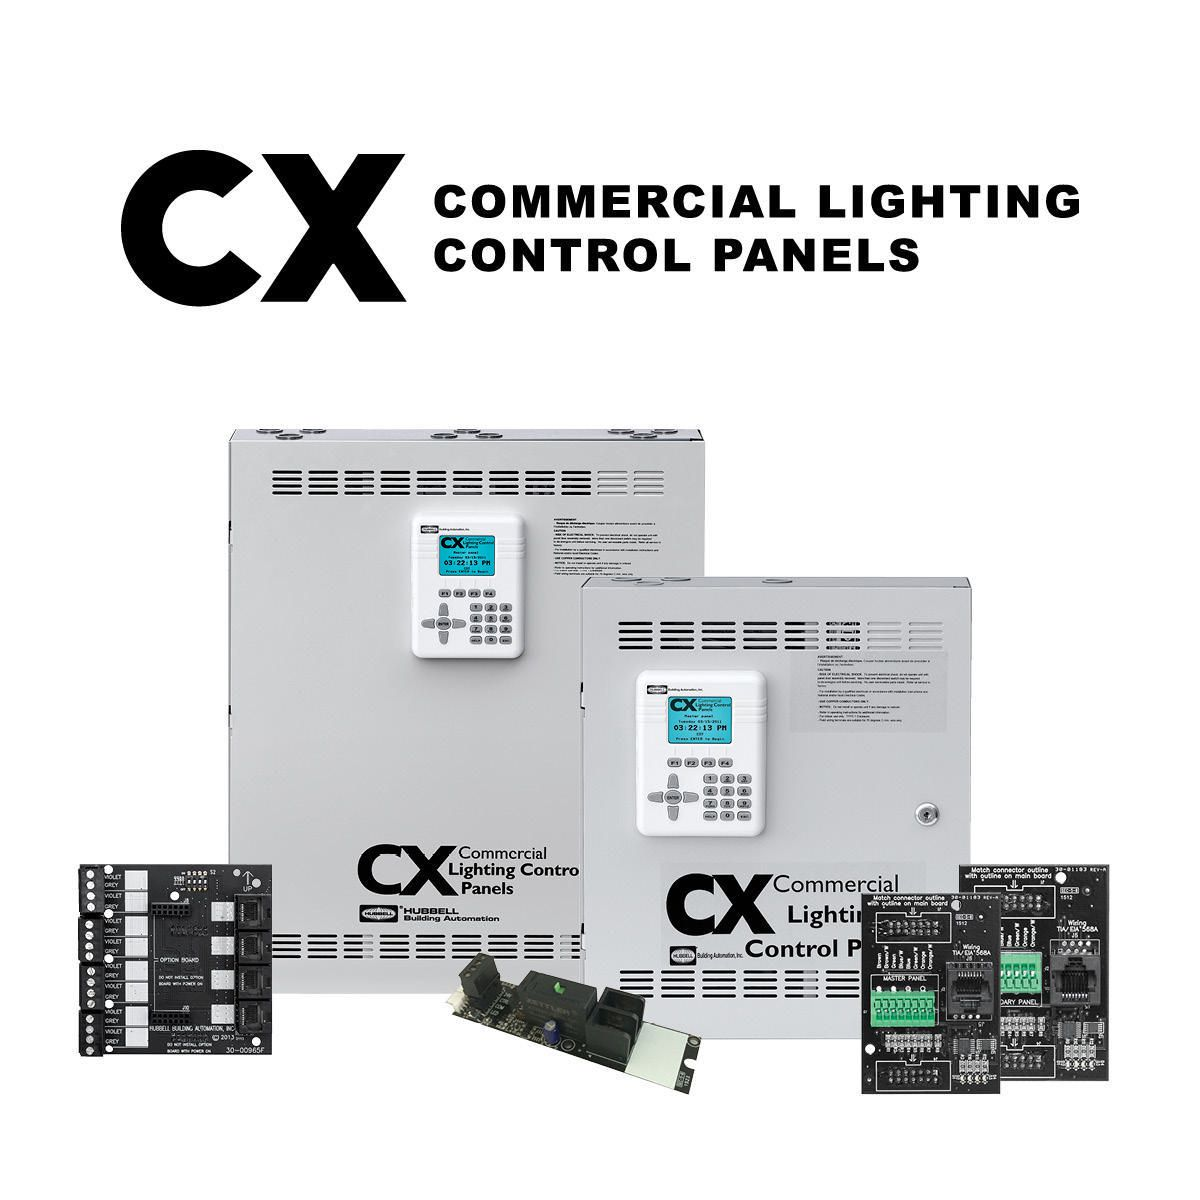 cx commercial lighting control panels